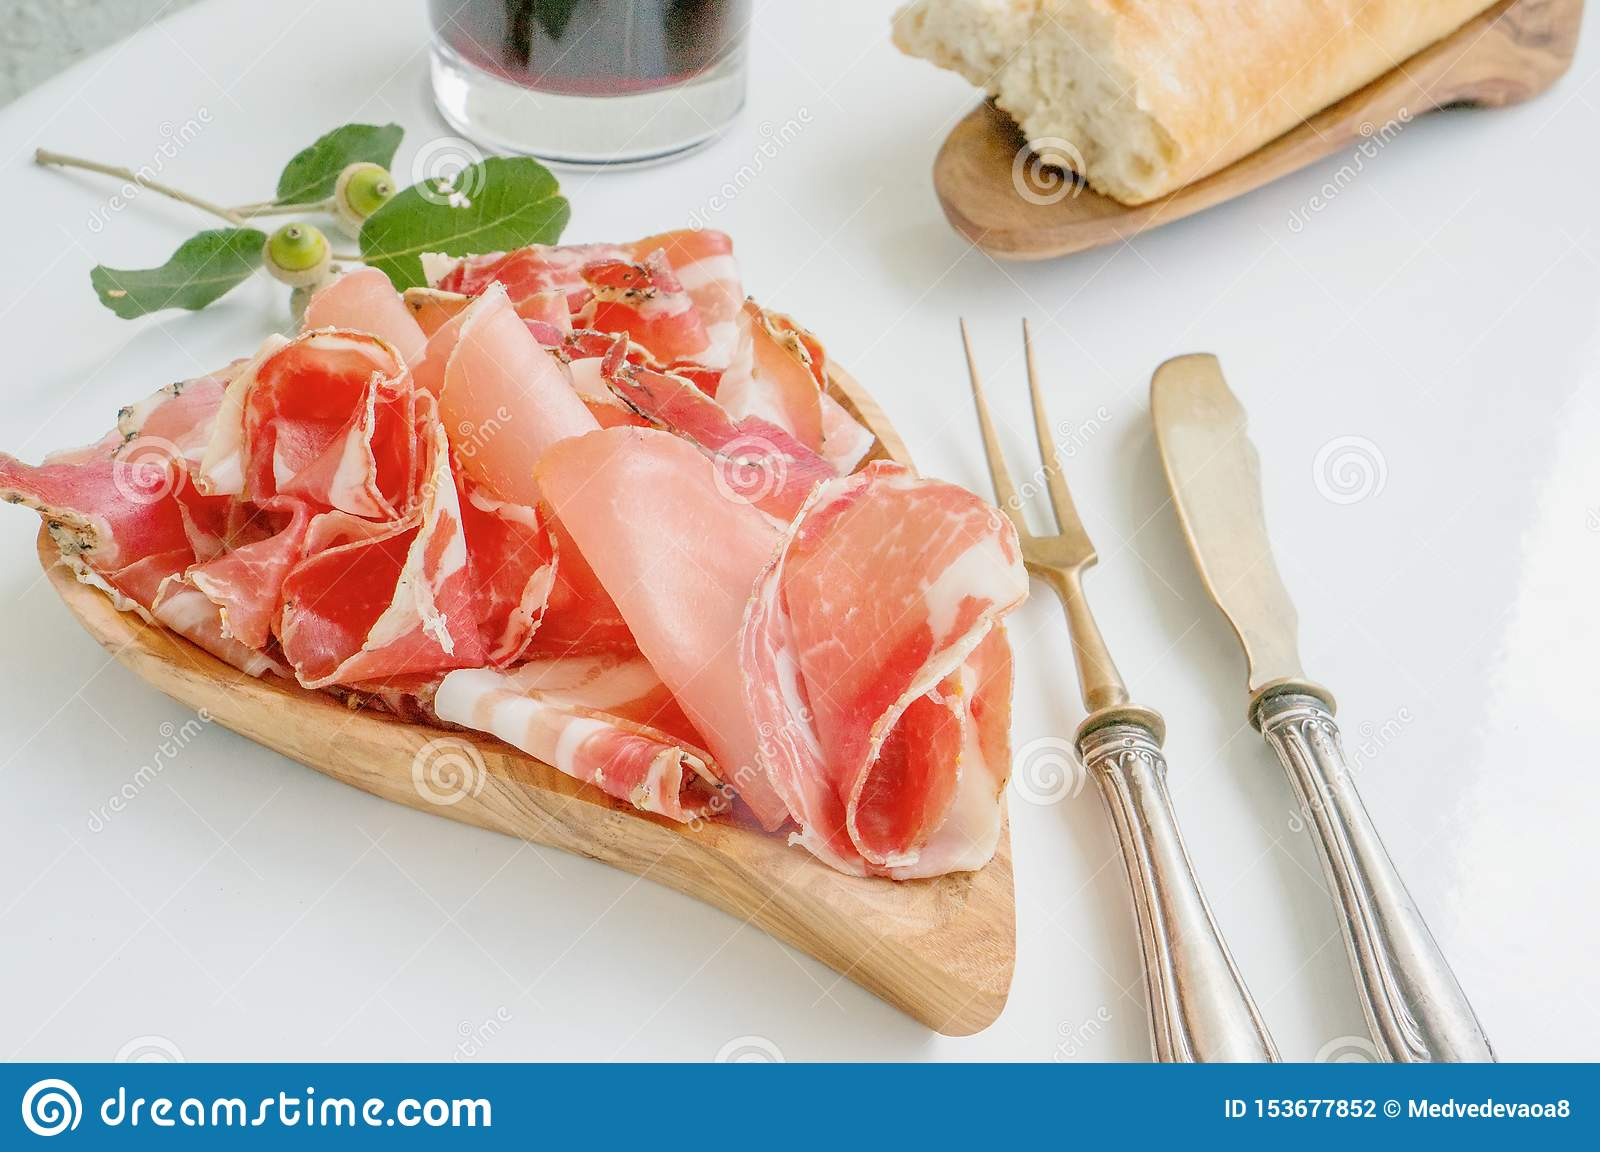 The aroma of ham and spices, thinly sliced on a white table with bread antique Cutlery and red wine